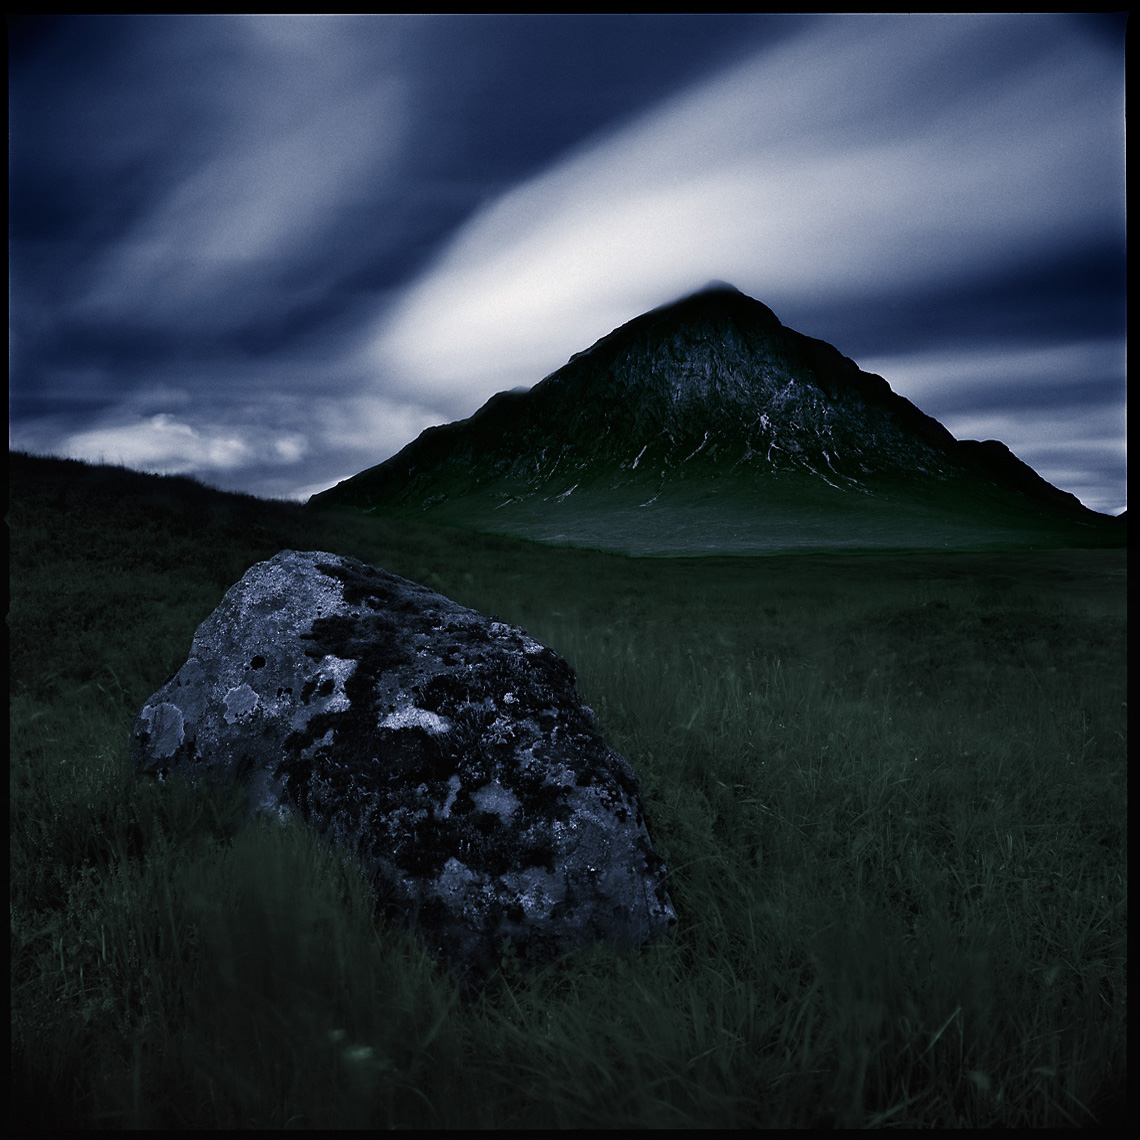 Buachaille Etive Mor Mountain Glen Etive Scottish Highlands Scotland Landscape Photographs